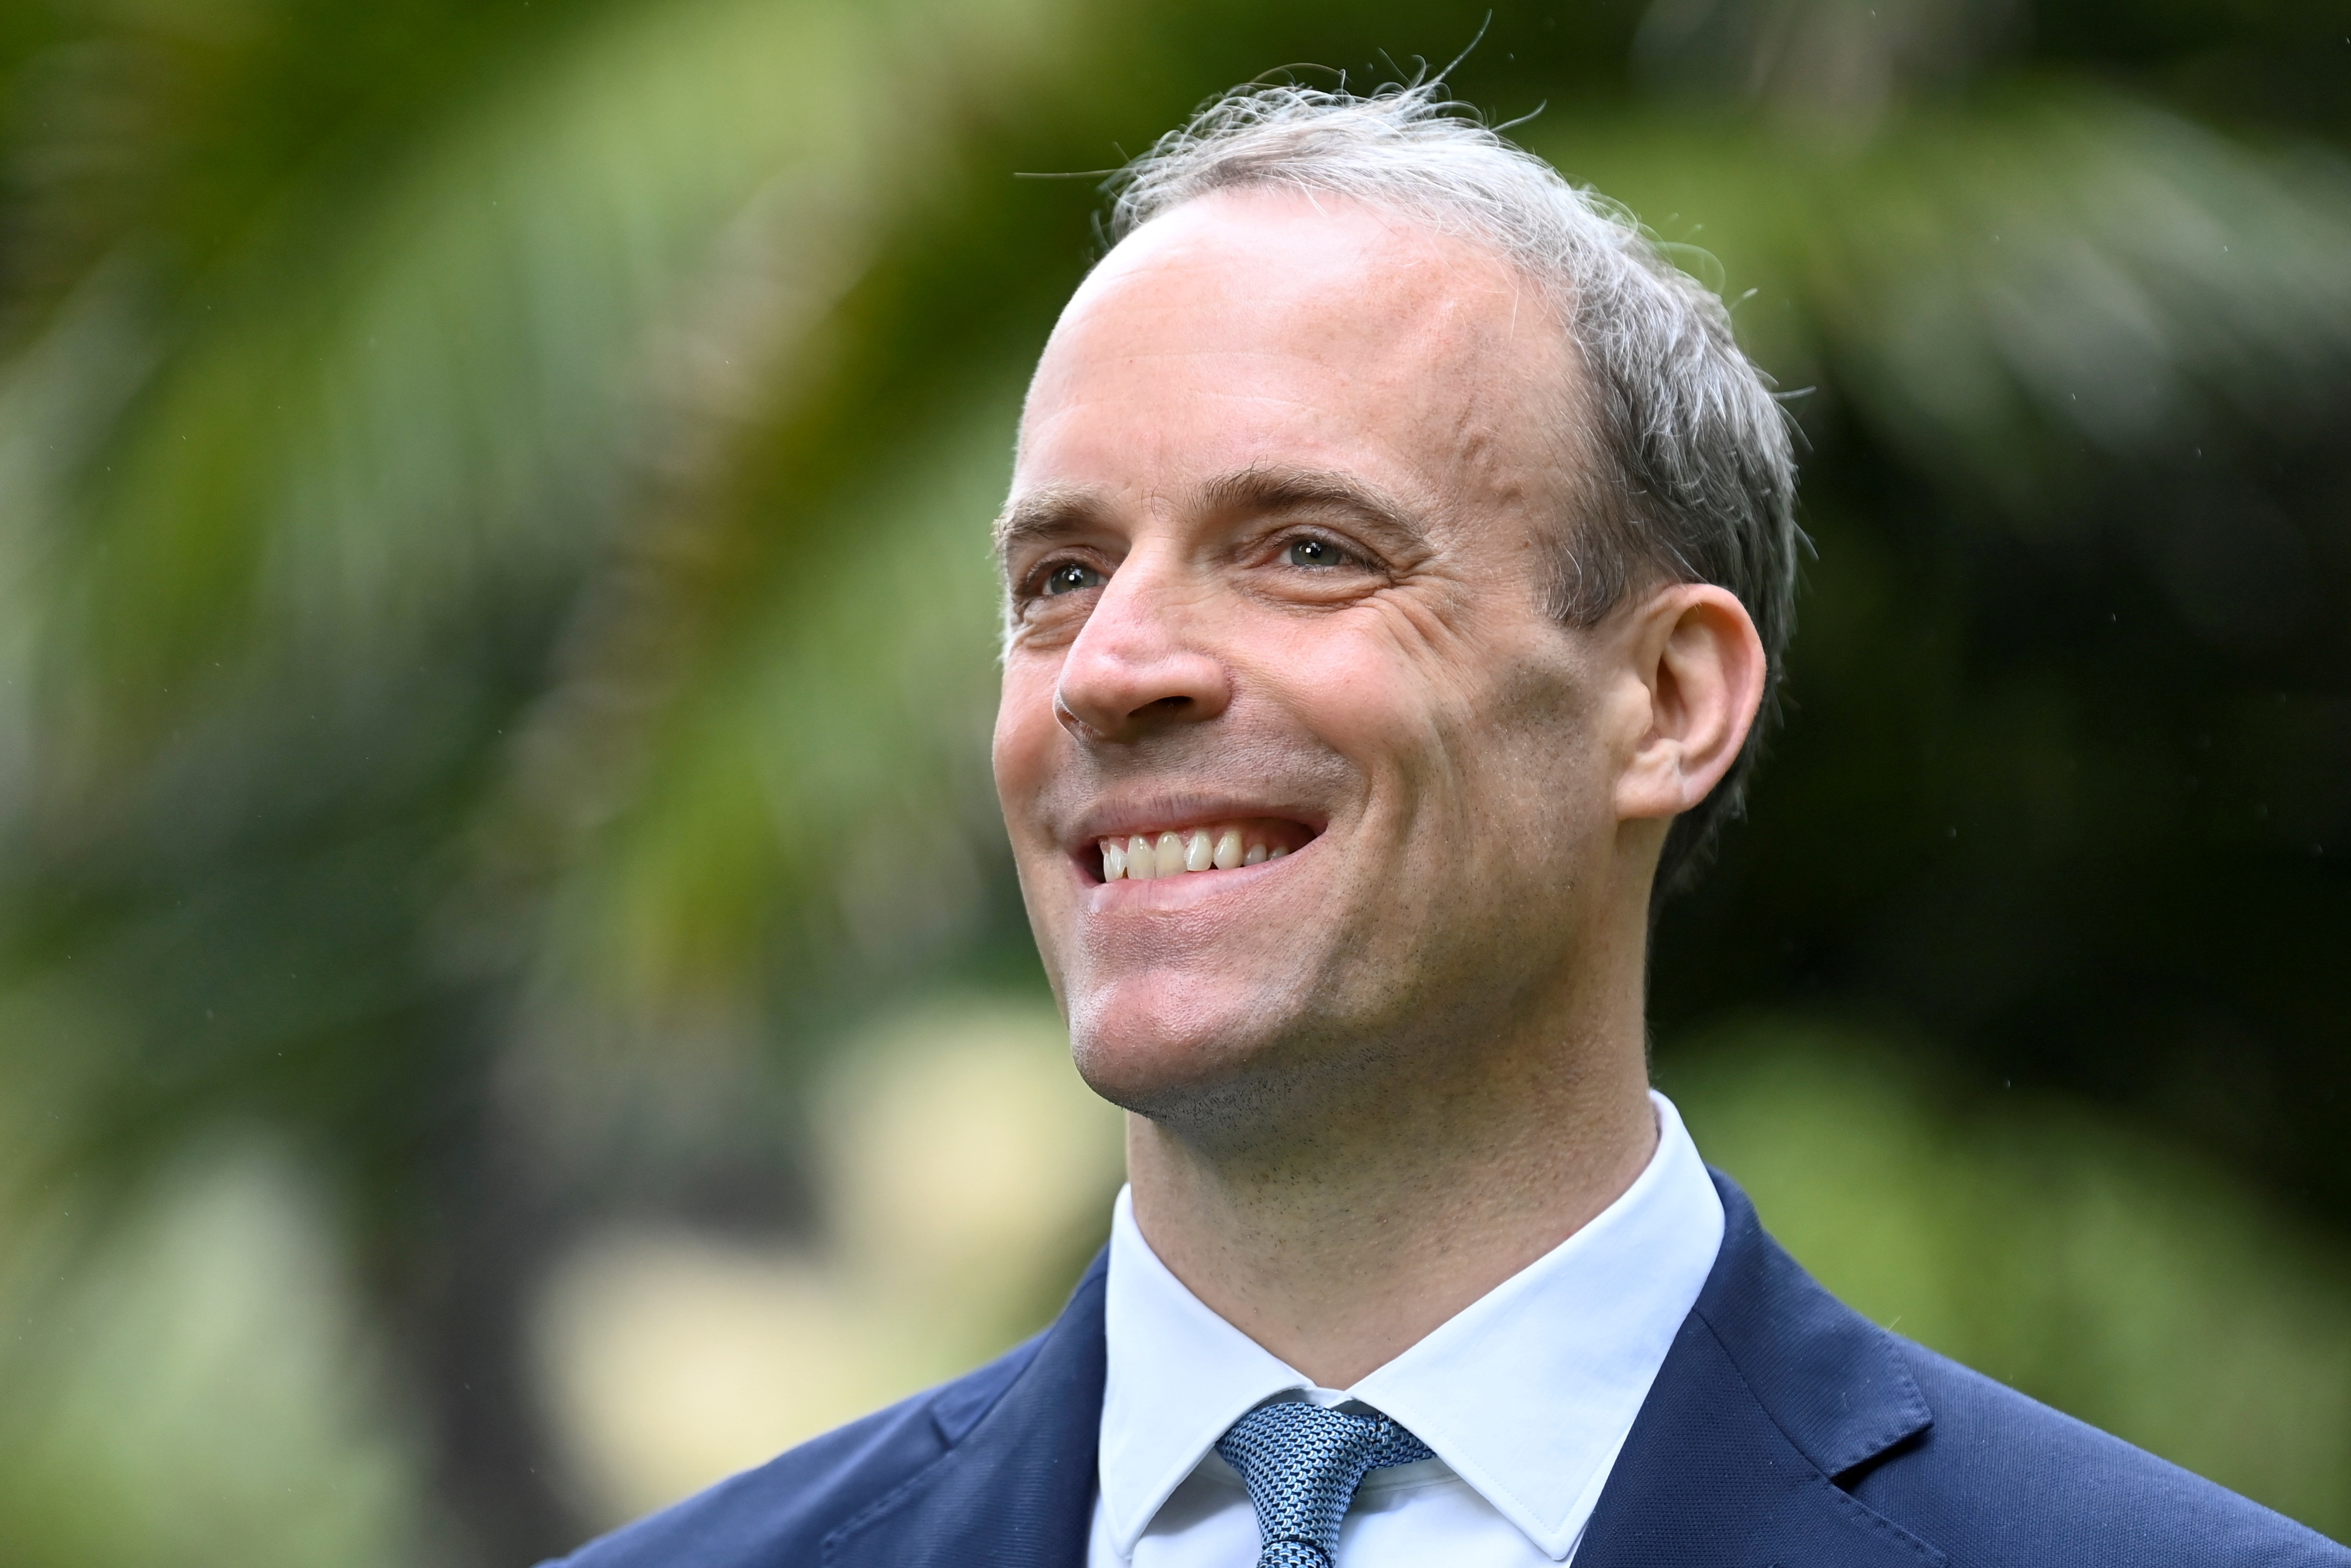 Britain's Foreign Secretary Dominic Raab is seen on the sidelines of G7 summit in Carbis Bay, Cornwall, Britain, June 11, 2021. REUTERS/Toby Melville/File Photo